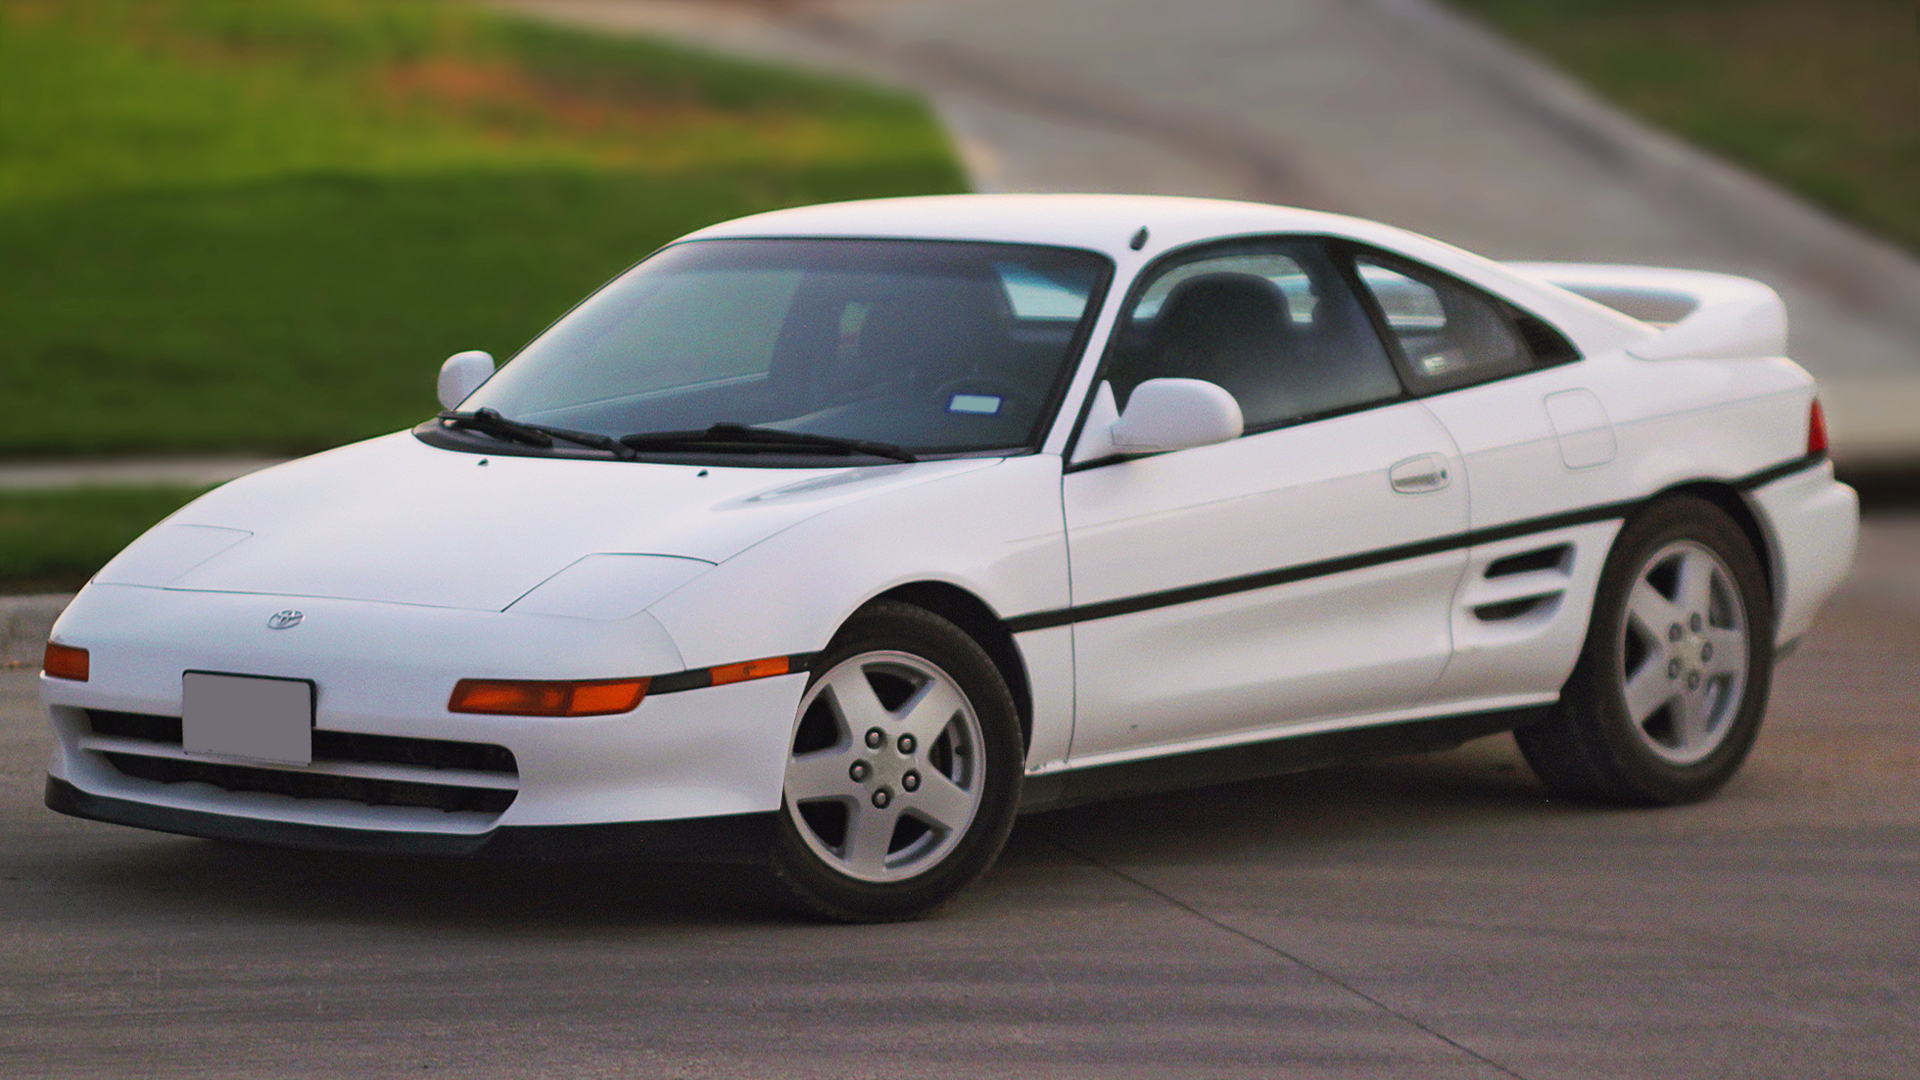 Toyota MR2 - Wikipedia